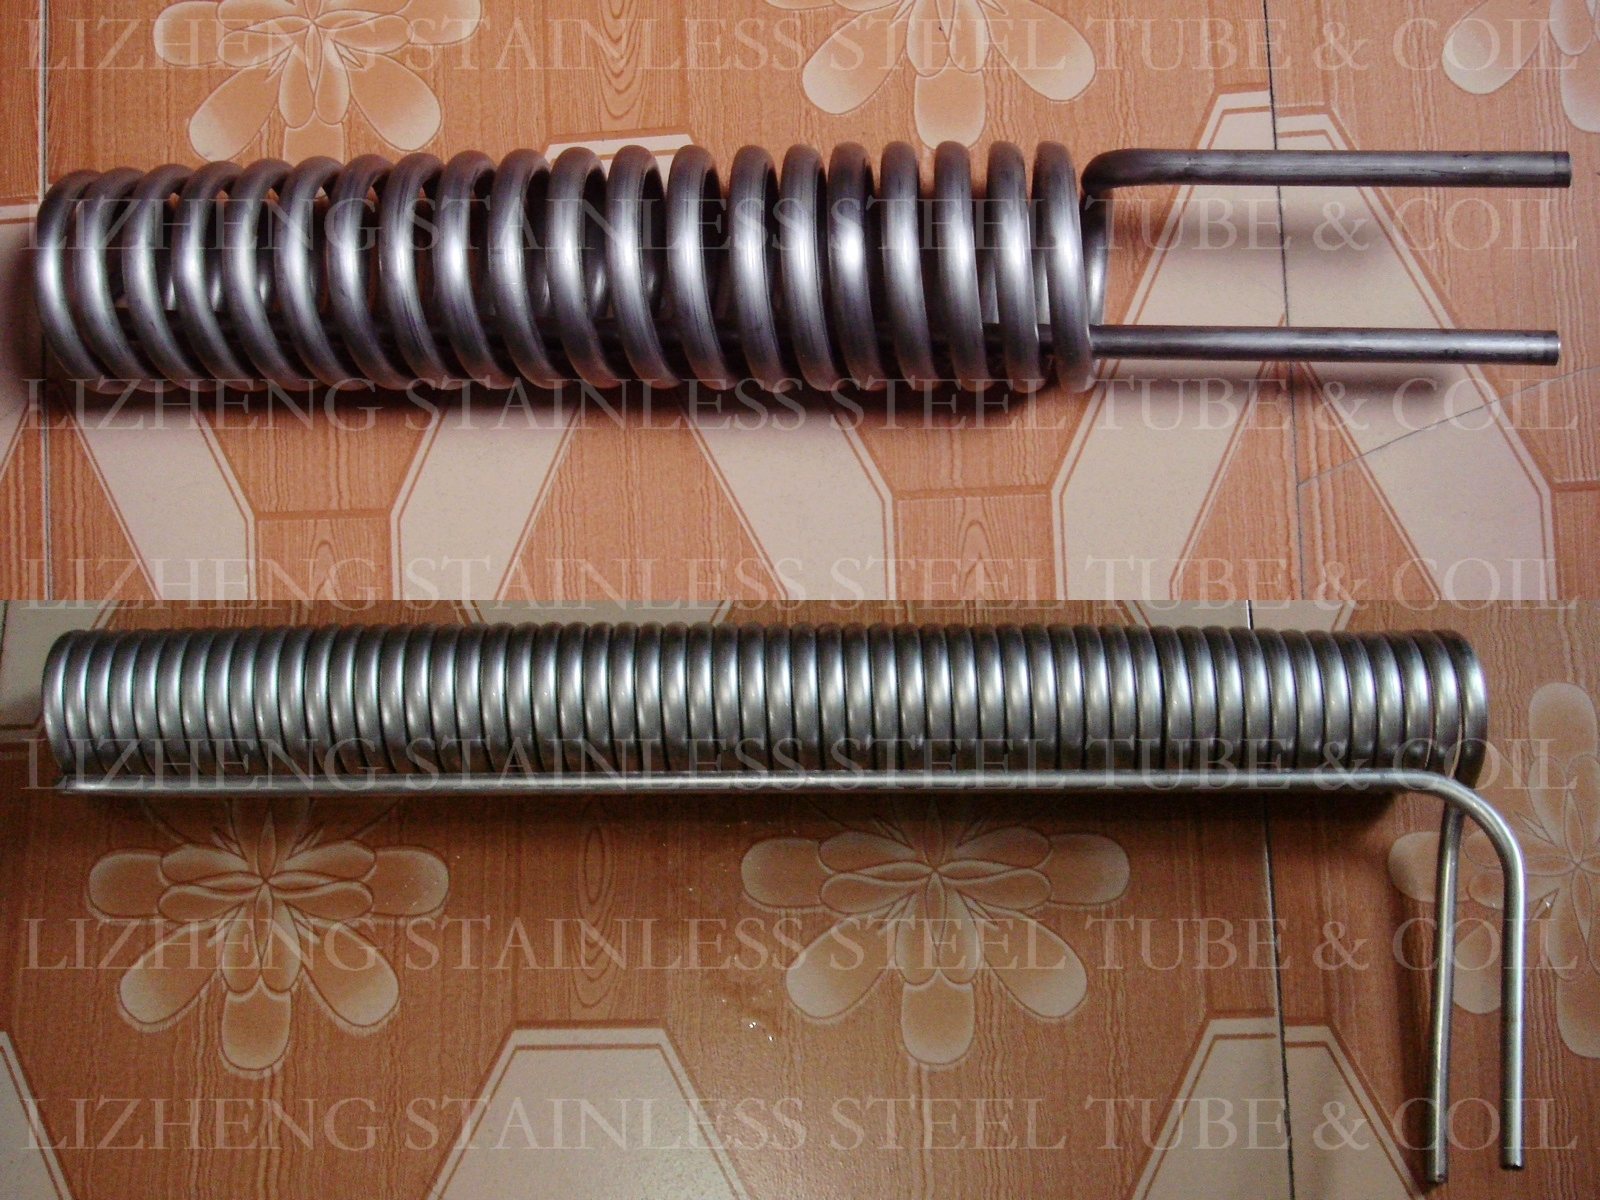 Lizheng stainless steel tube coil corp tampa florida